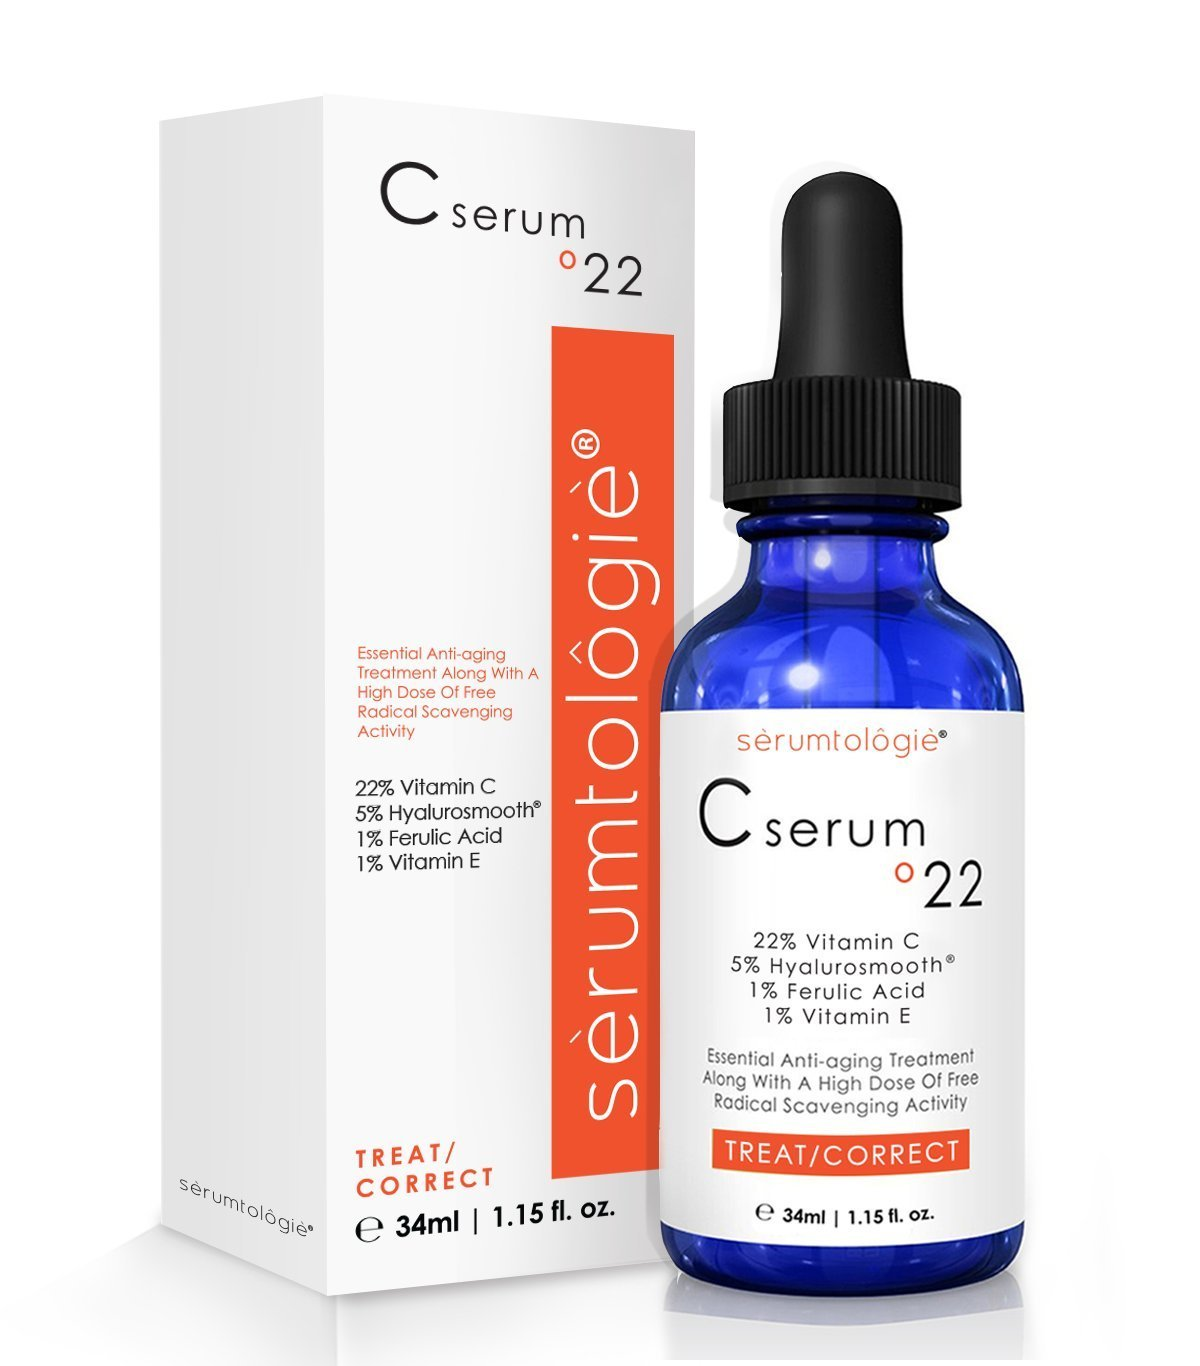 Vitamin C serum for face with Hyaluronic Acid Serumtologie Vitamin C Serum 22%